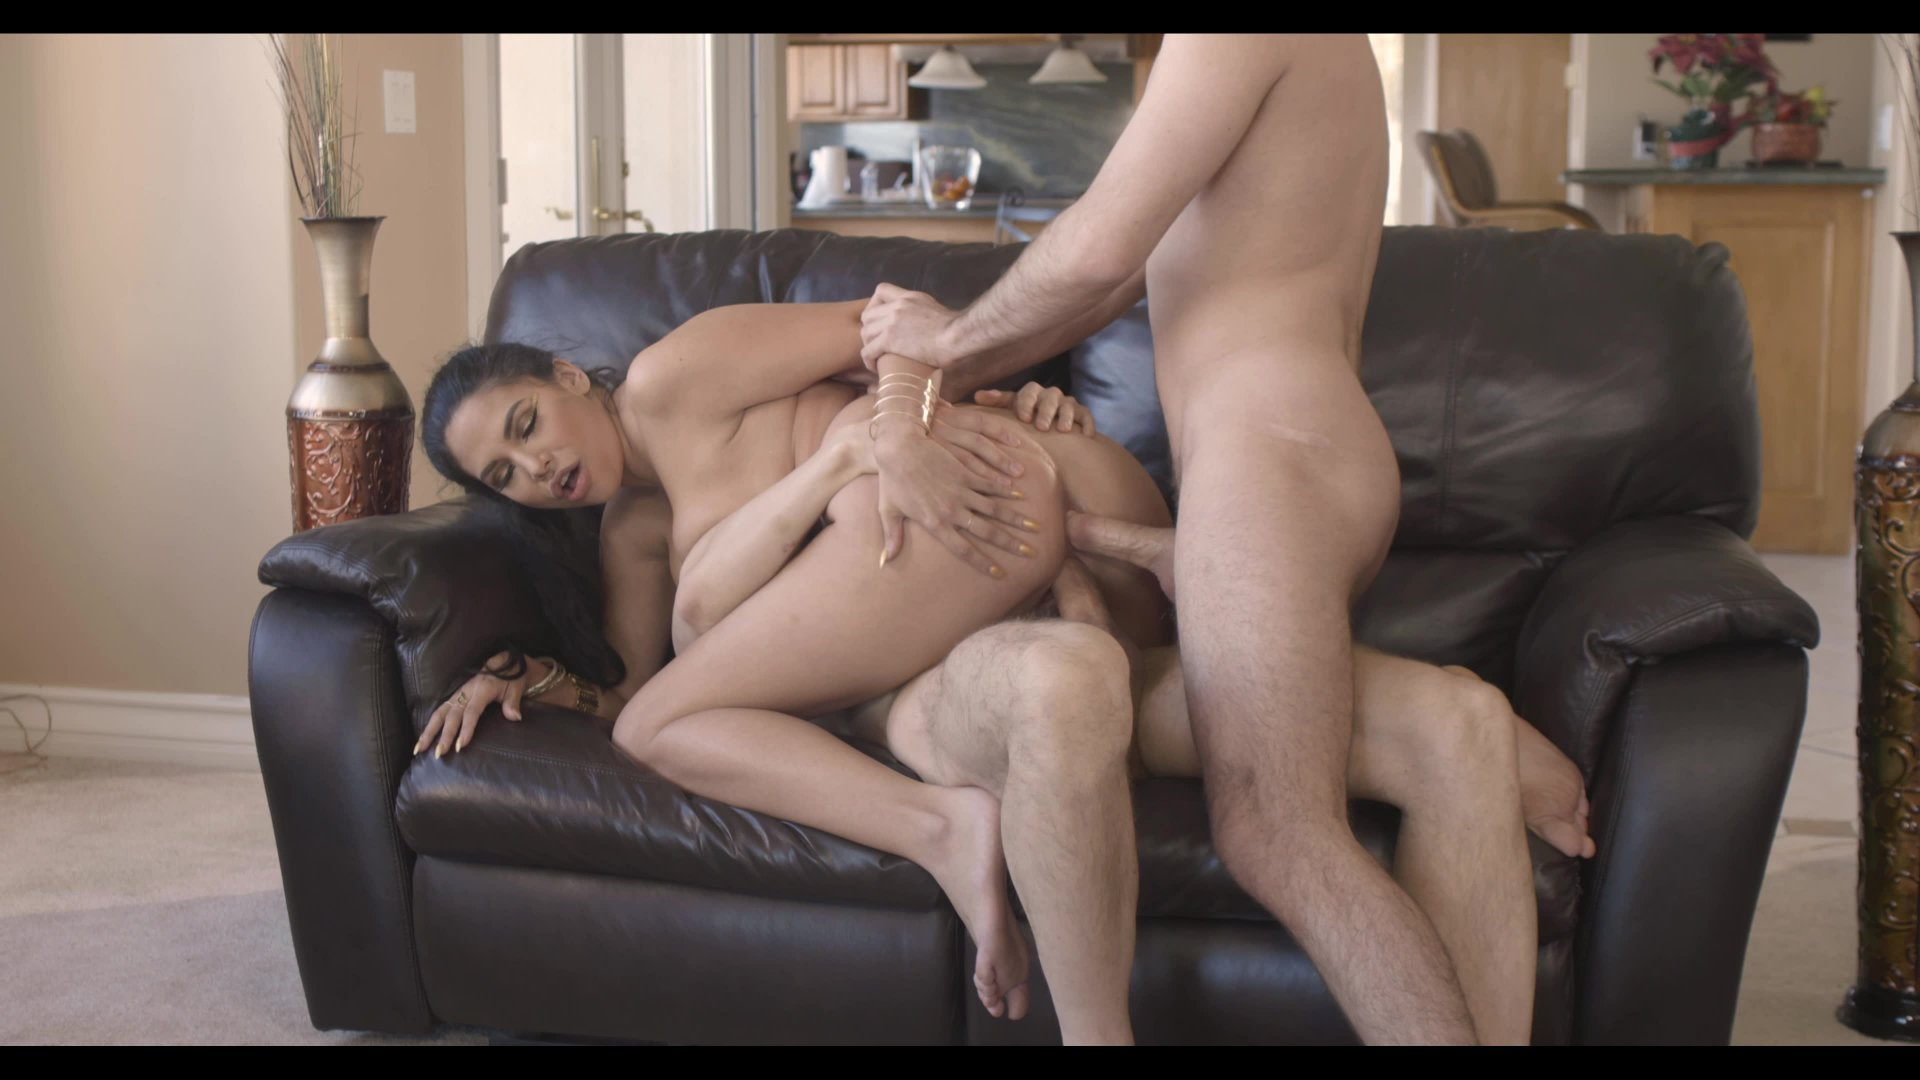 Missy Martinez's 1st and Only DP Exclusive 4K HD streaming porn video scene.